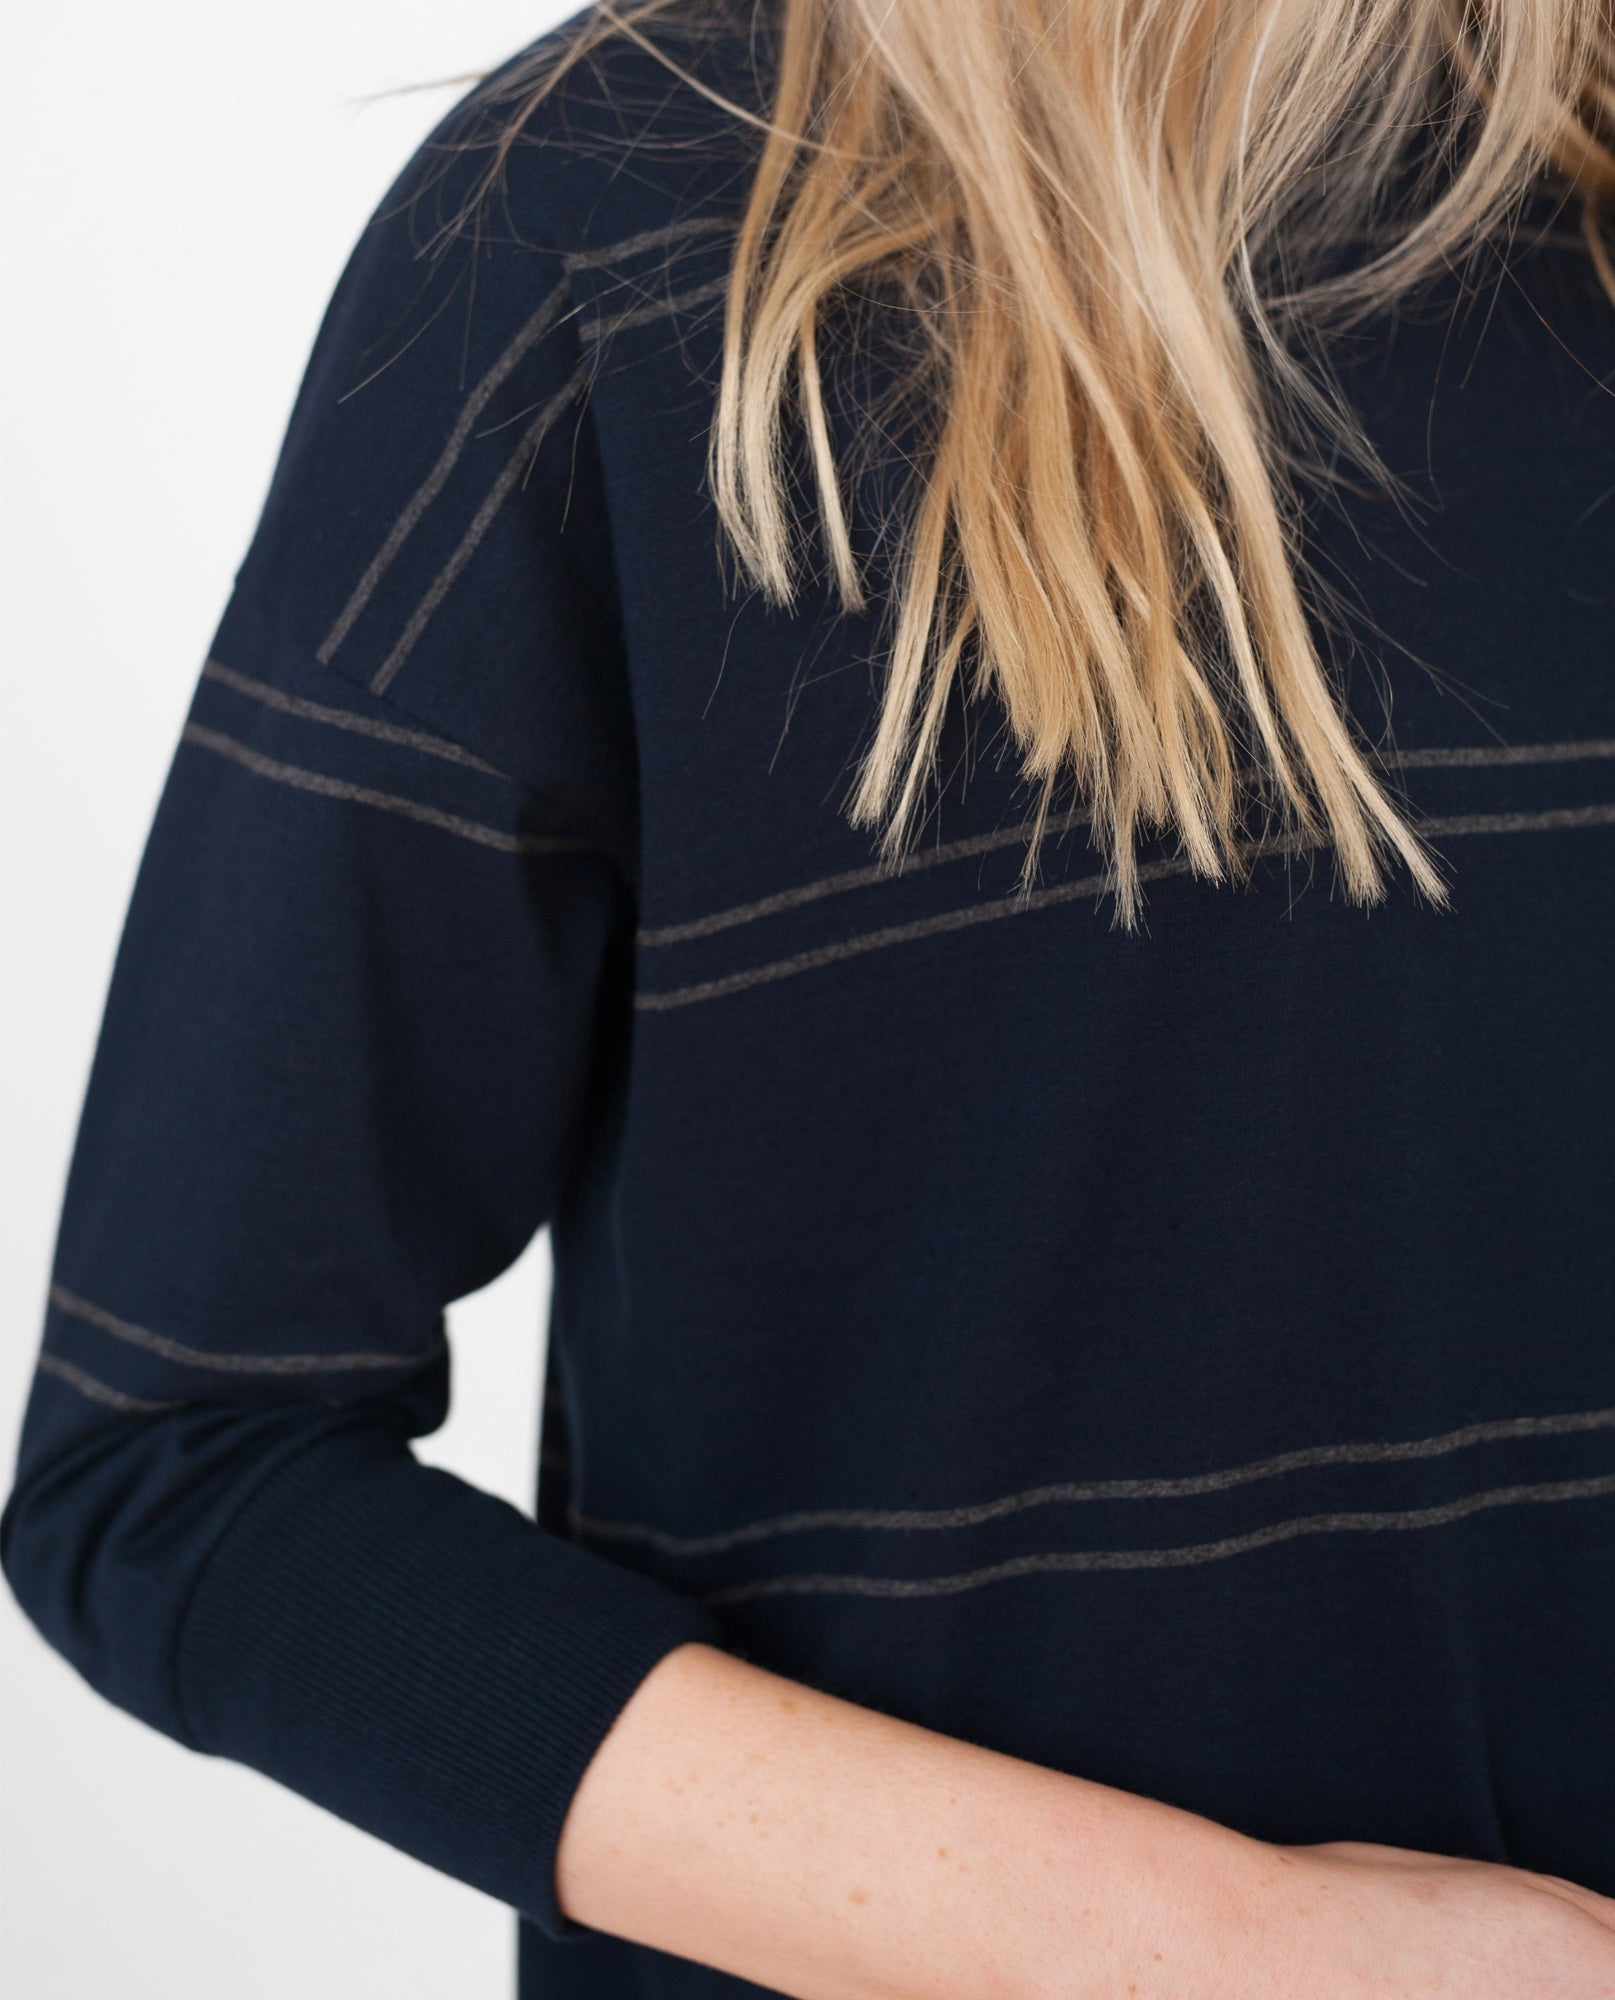 LILLY-ELLA Organic Cotton Top In Navy And Dark Grey